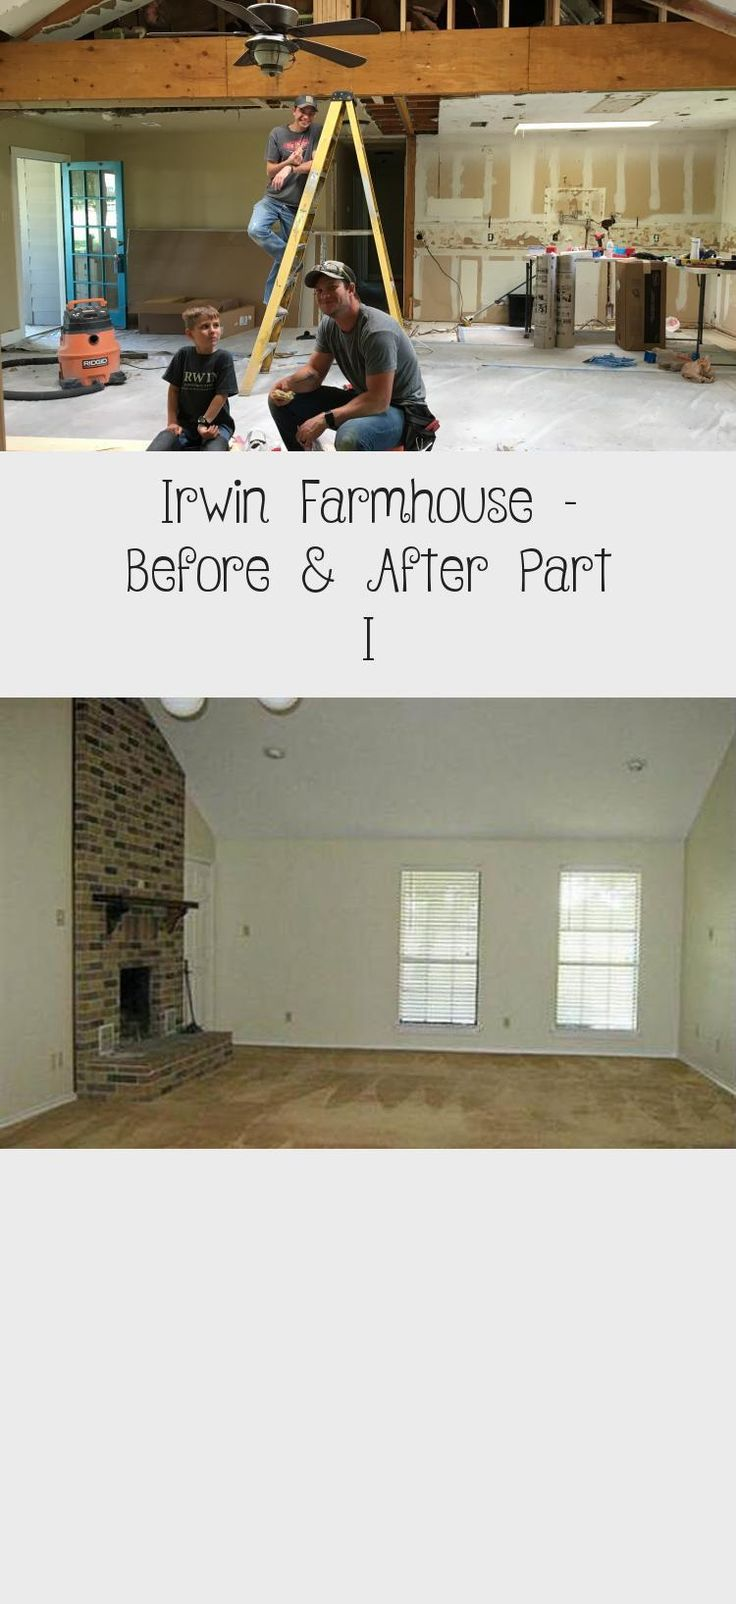 Irwin Farmhouse Before & After Part I